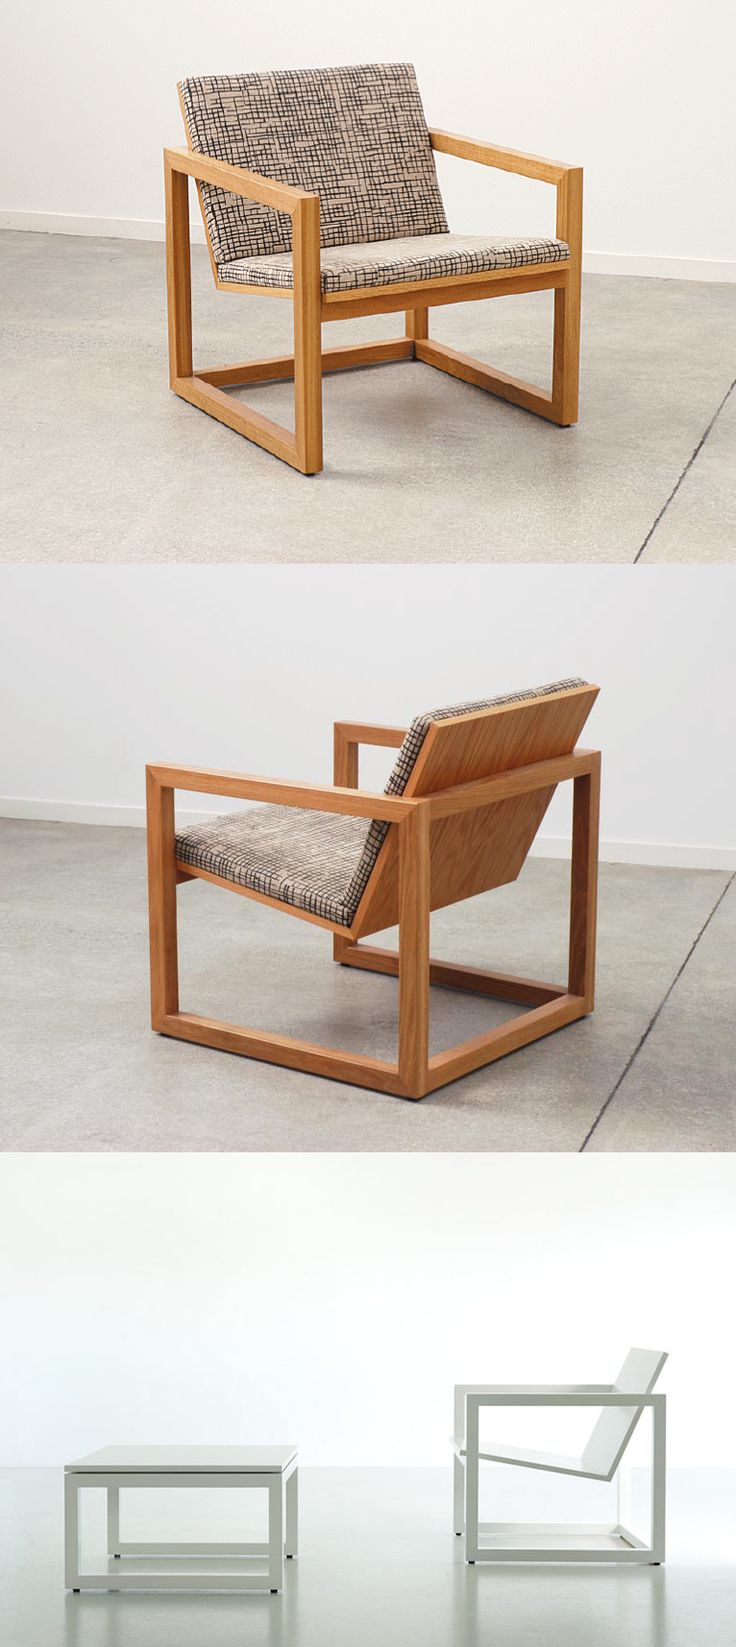 http://yue.co.nz/blog/wp-content/uploads/2013/02/FramedArmchair.png